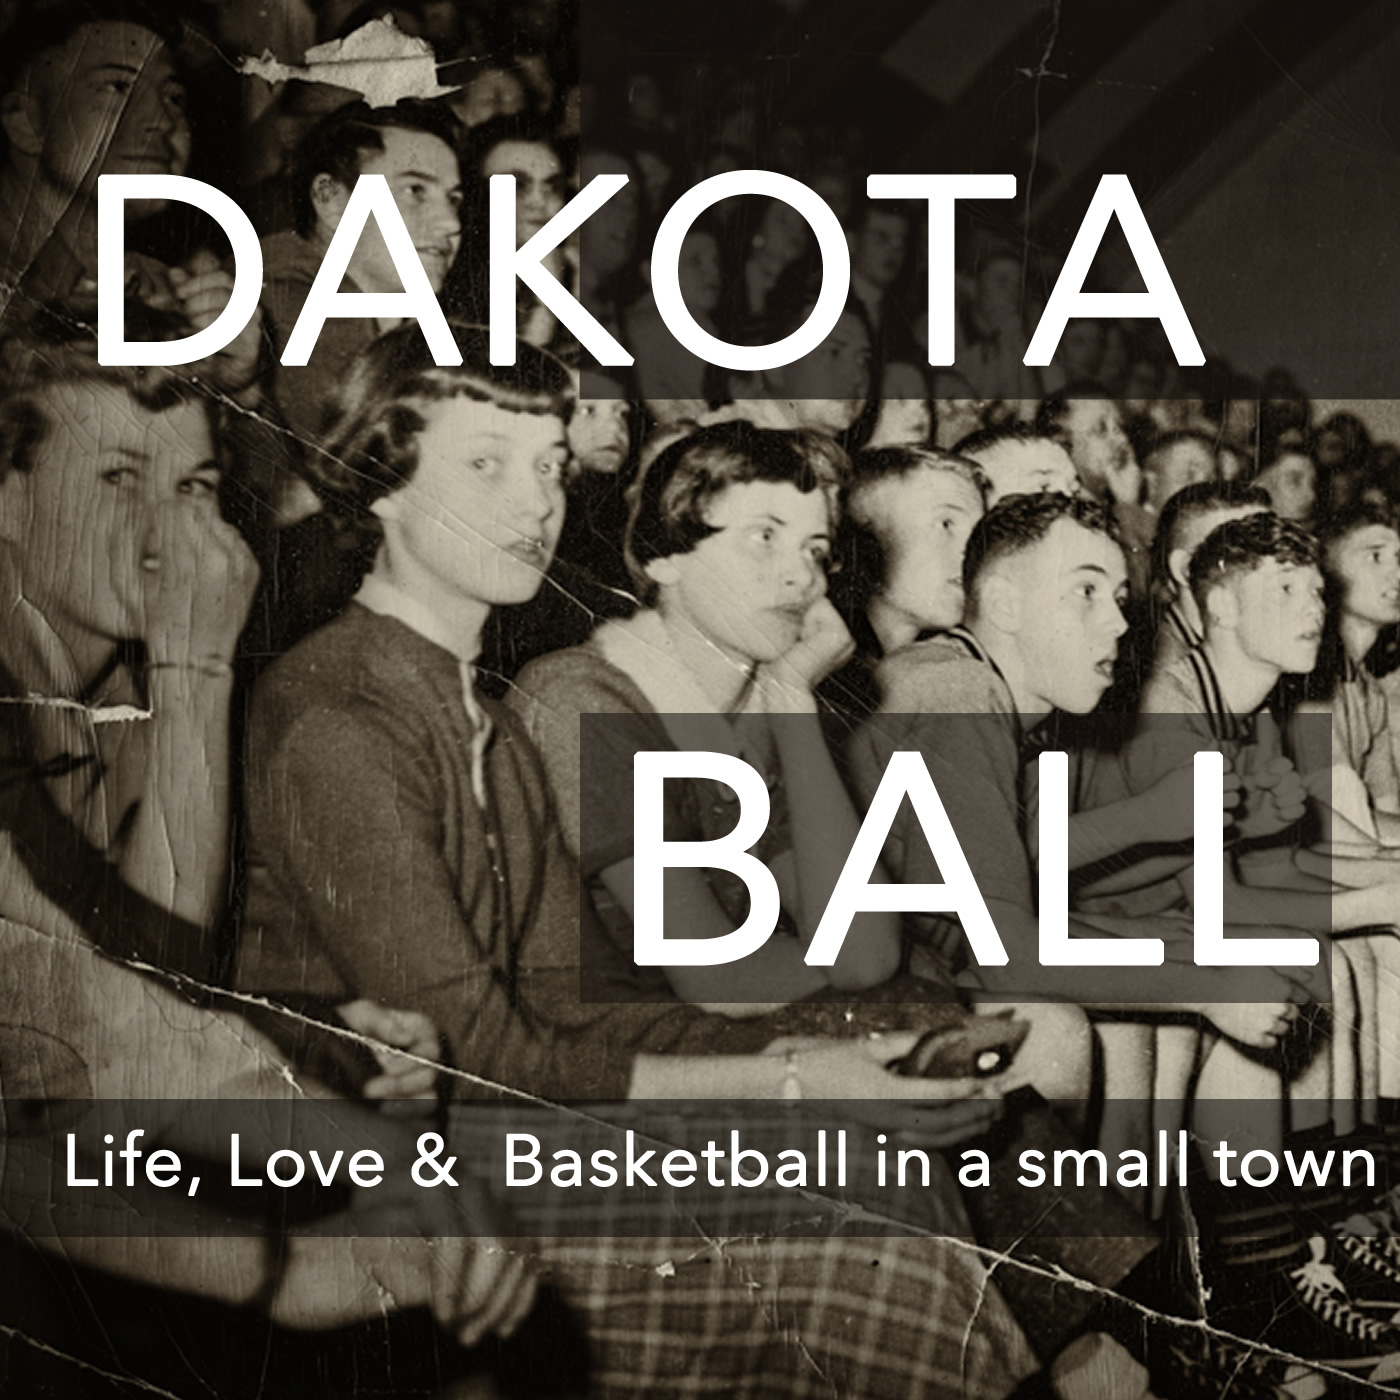 The DakotaBall Podcast